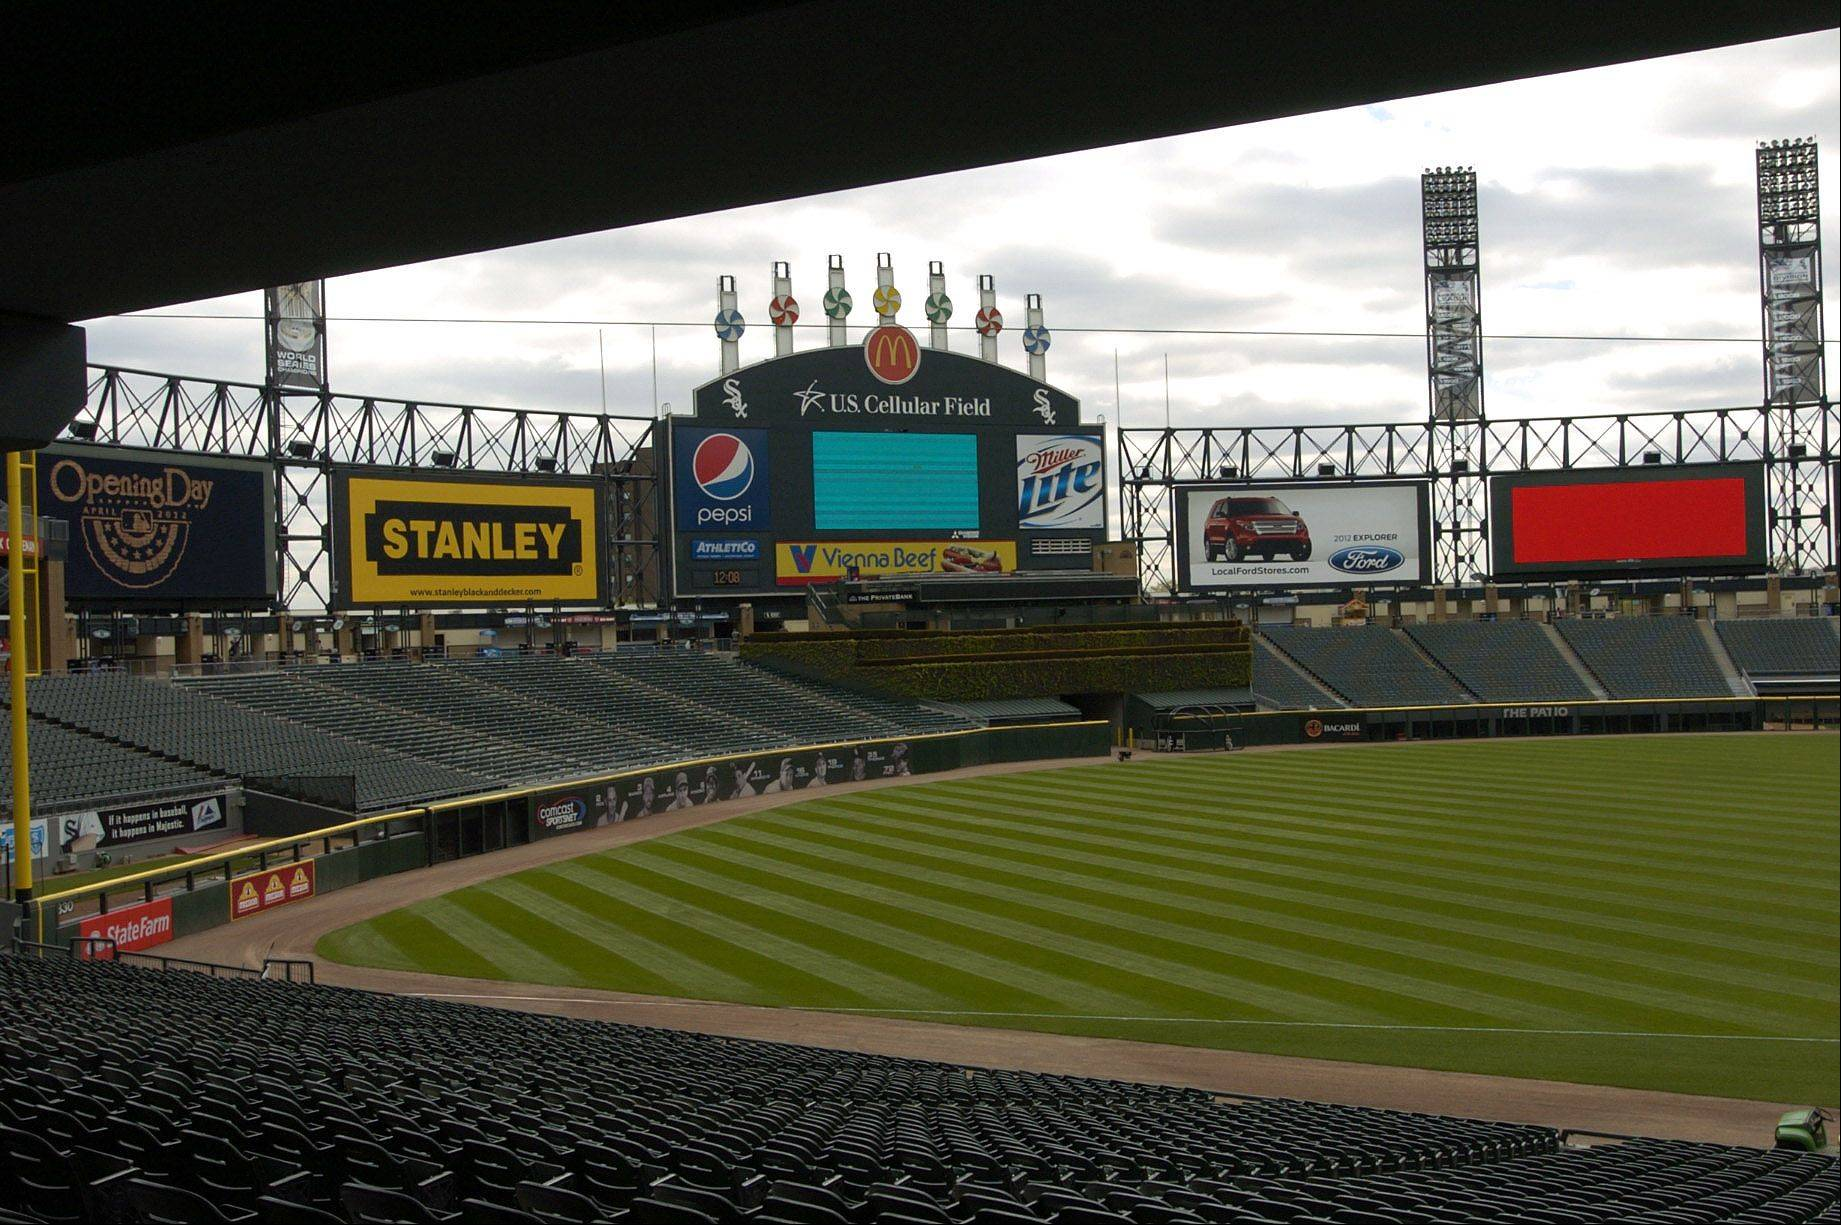 A lawsuit alleges the Illinois Sports Facilities Authority has used taxpayer money to build and renovate U.S. Cellular Field and to build the Bacardi at the Park restaurant next door, but the White Sox organization has kept most of the revenue.